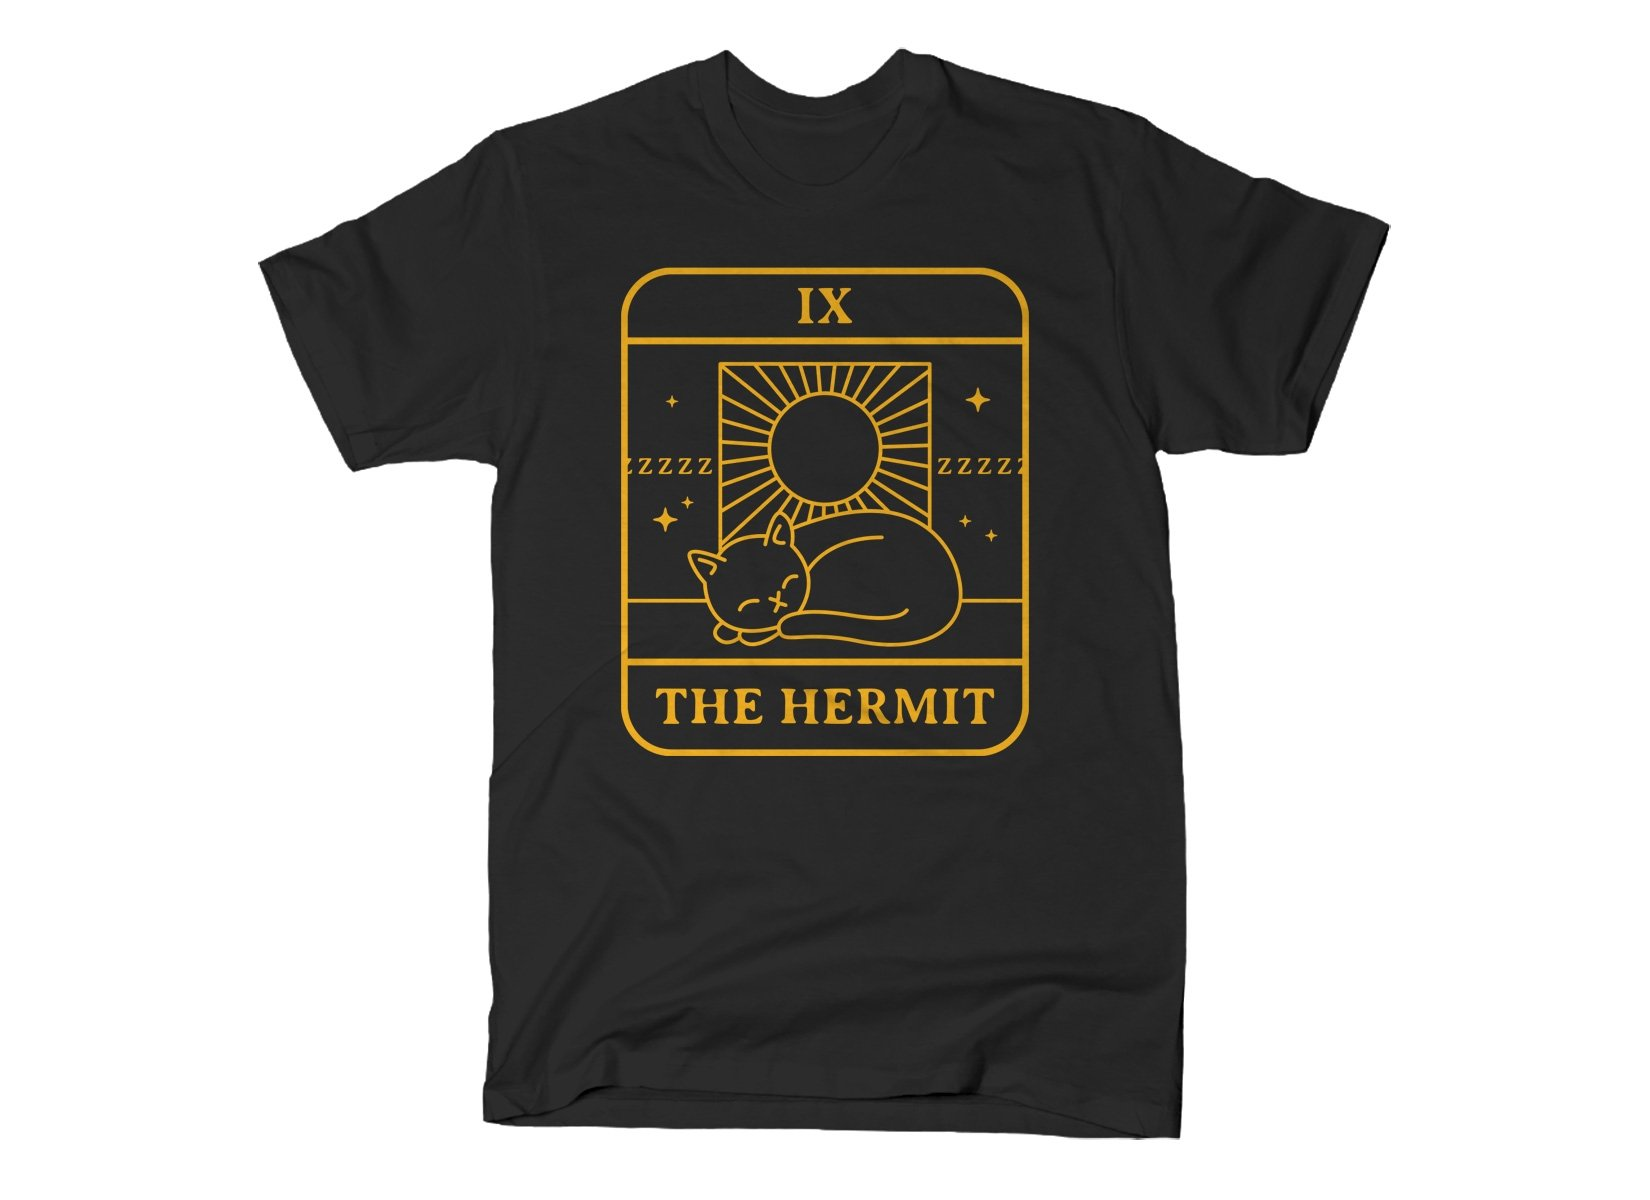 The Hermit on Mens T-Shirt